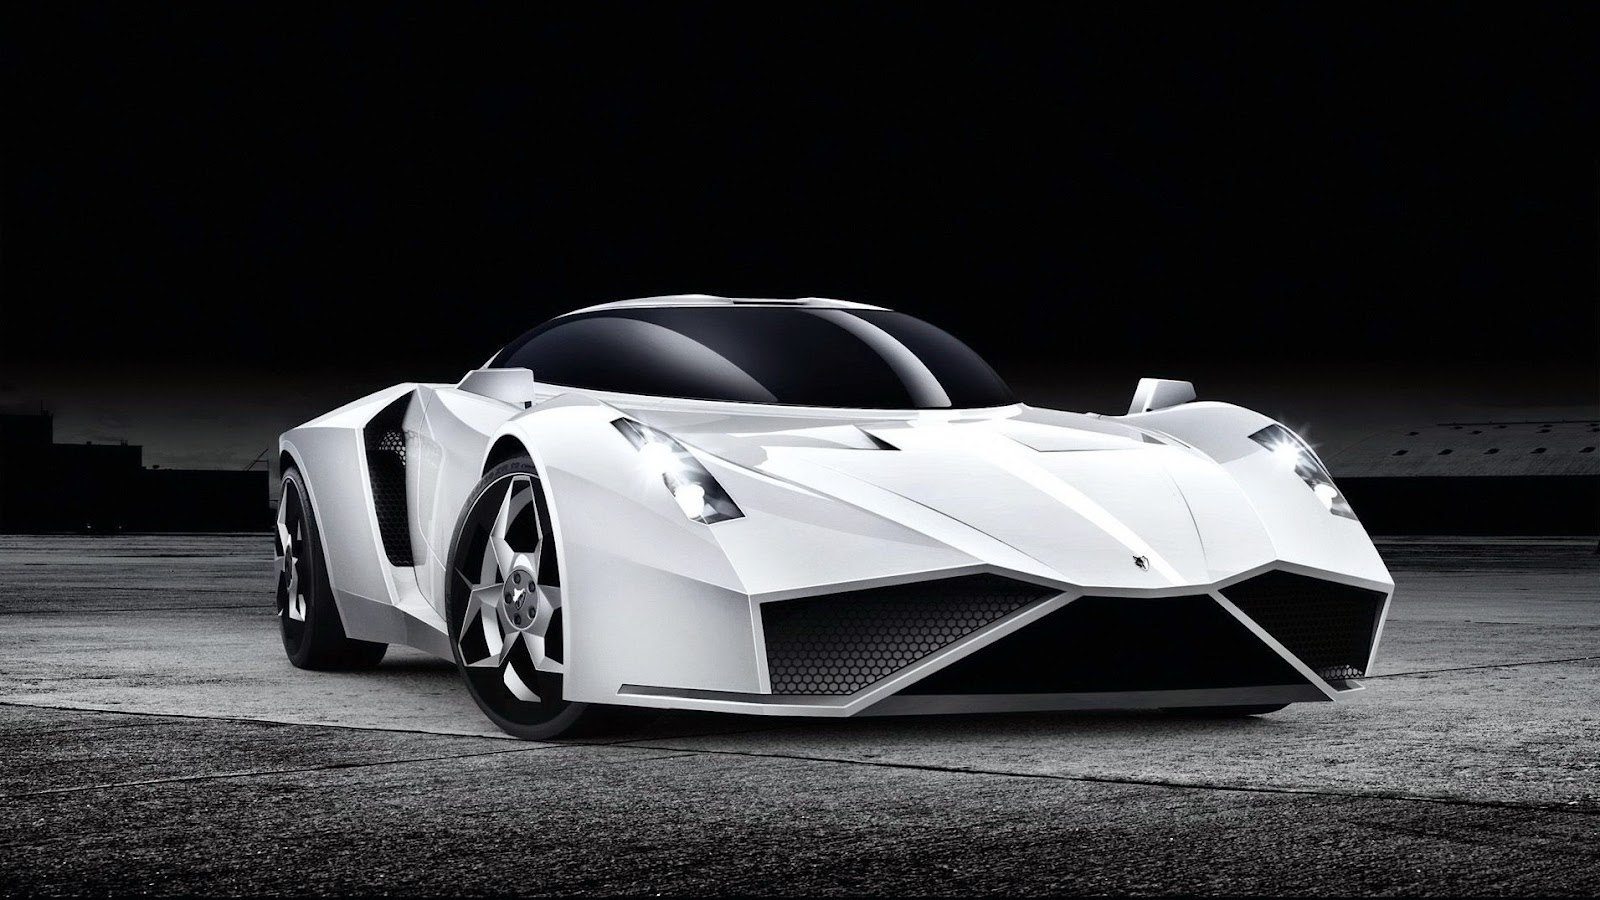 ferrari 2014 white wallpaper. ferrari enzo white wallpaper car free download 2014